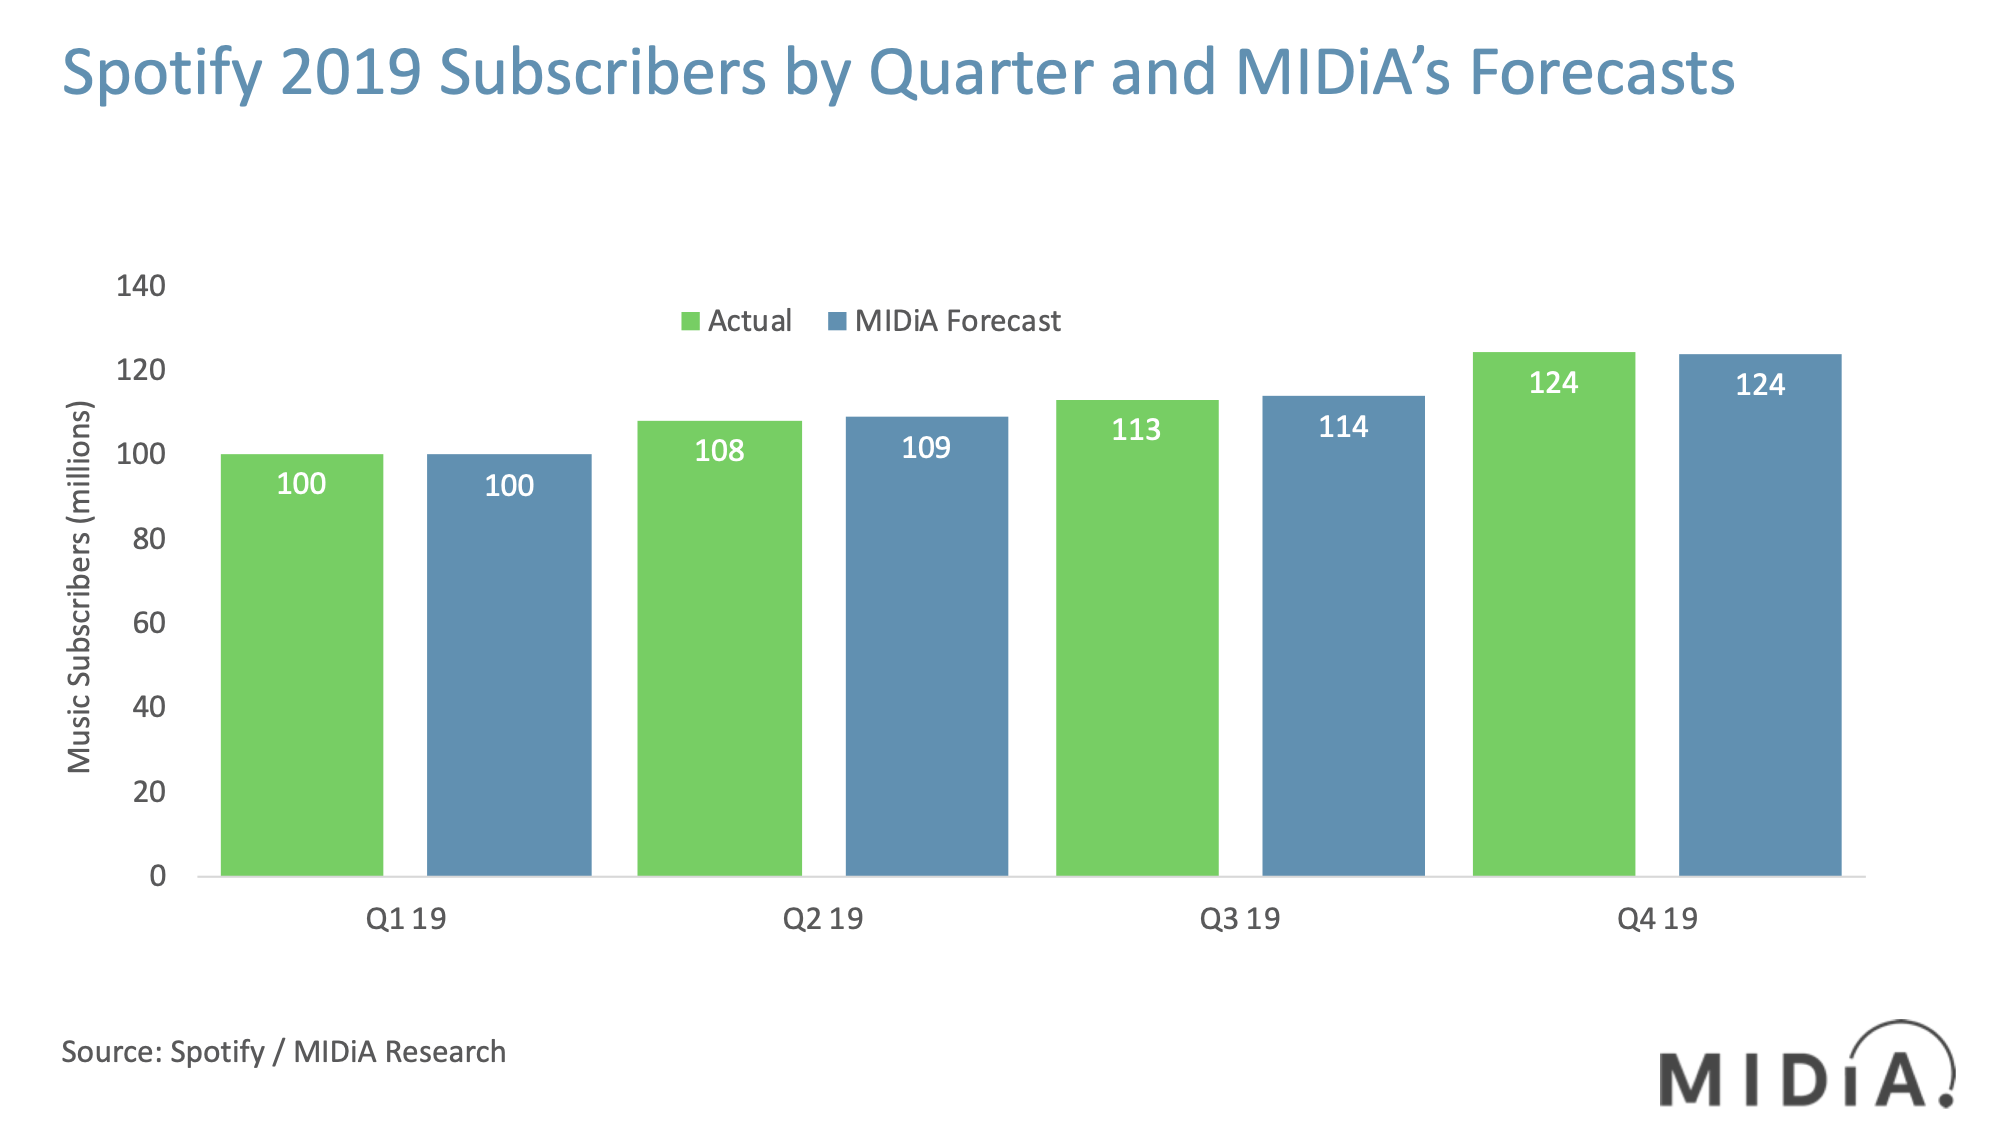 spotify subscribers by quarter 2019